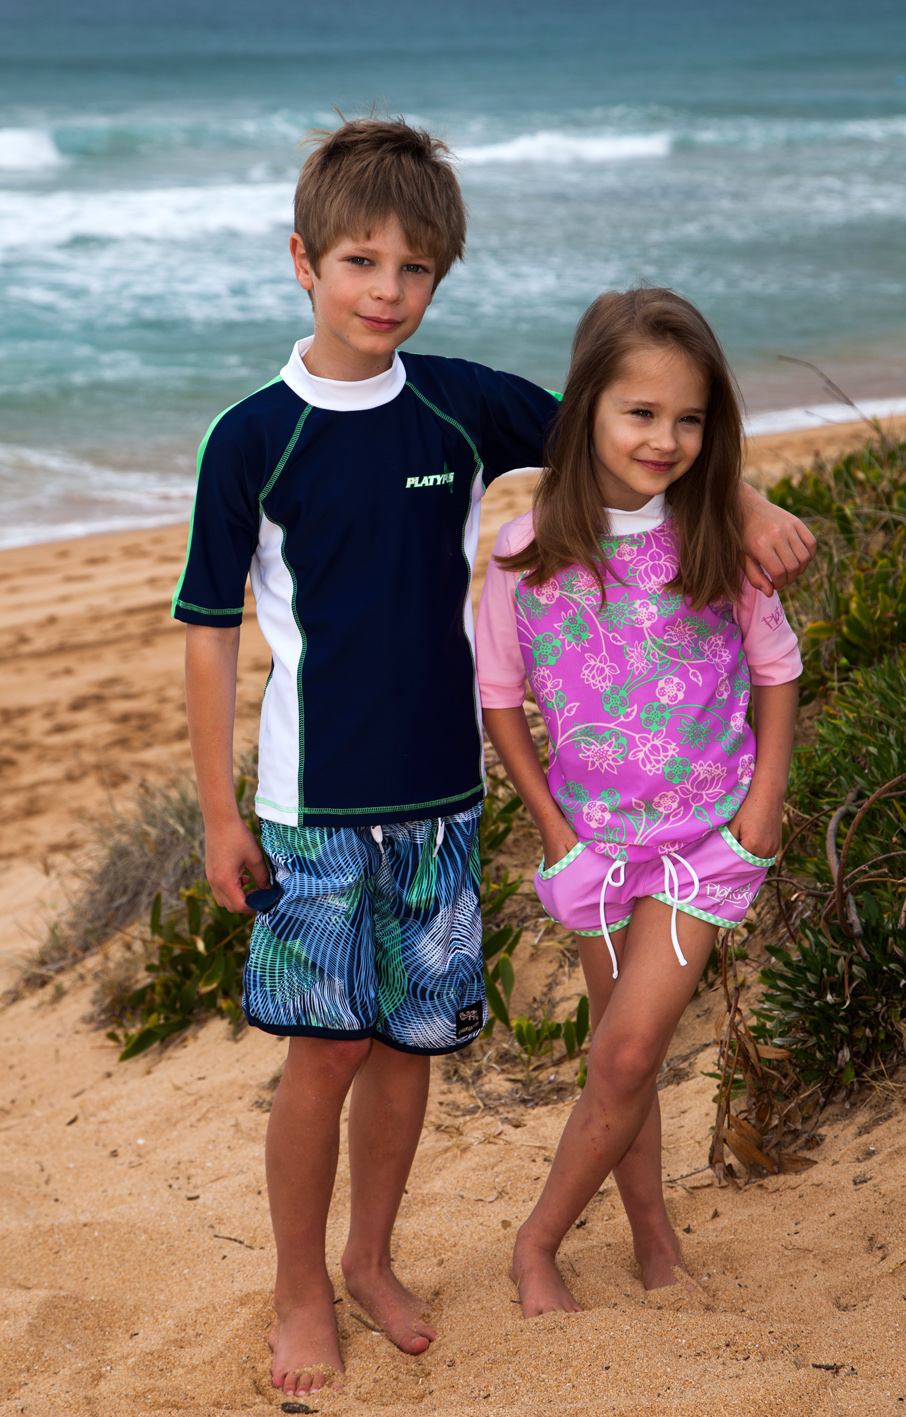 Uv Protective Children S Swimwear Is A Must For Parents To